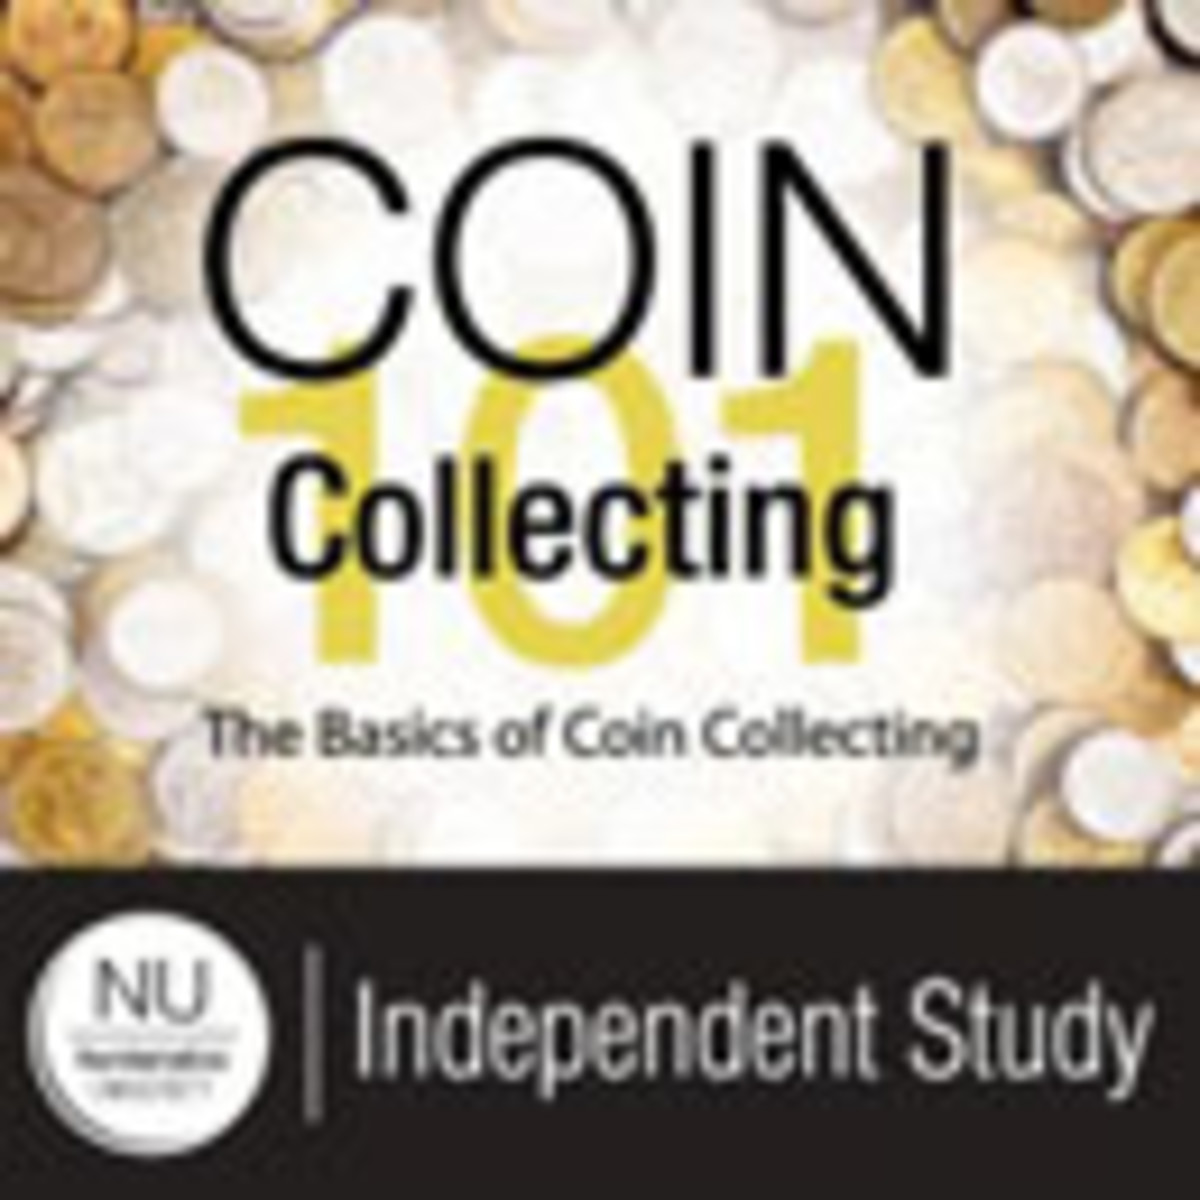 Want to learn more about what it means to become a coin collector?